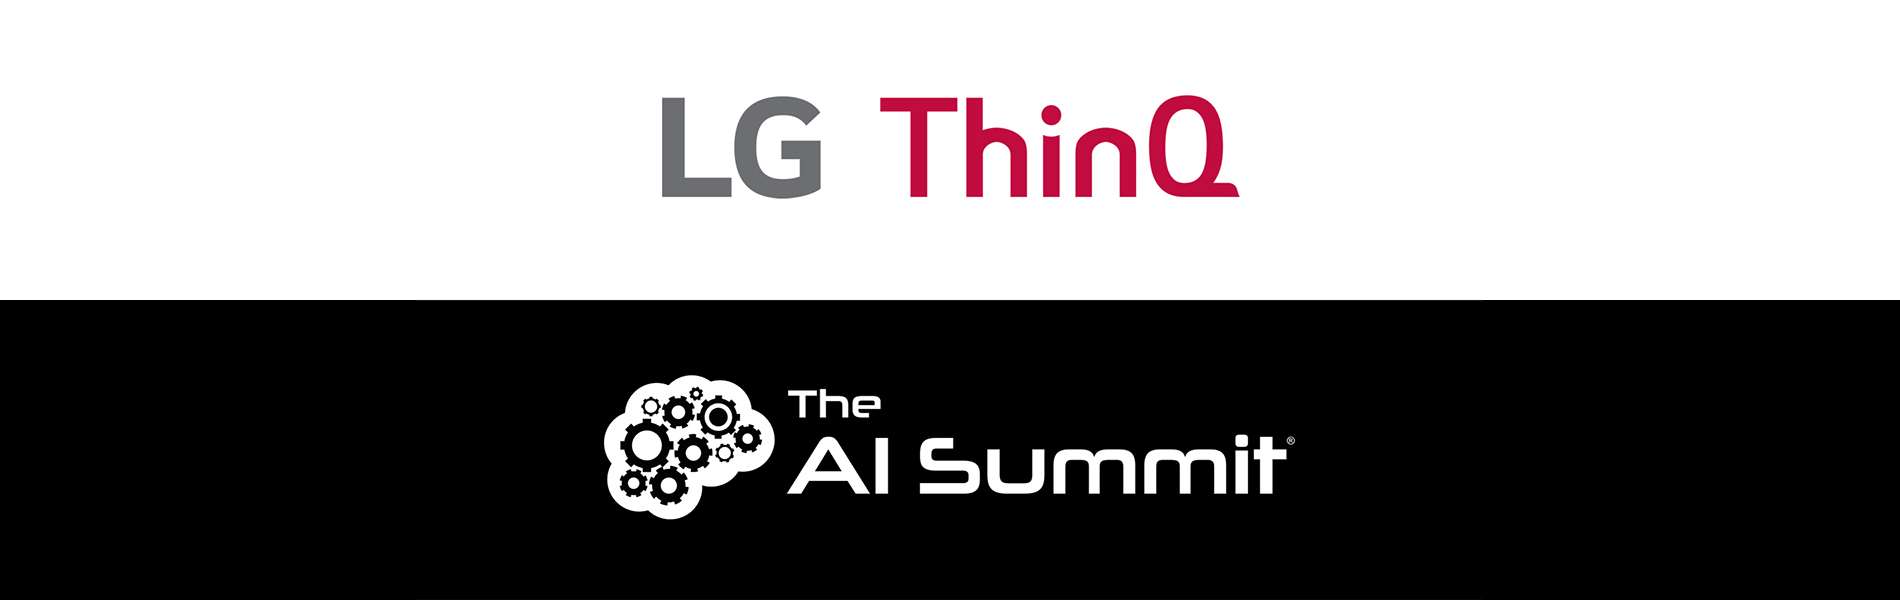 LG ThinQ hero